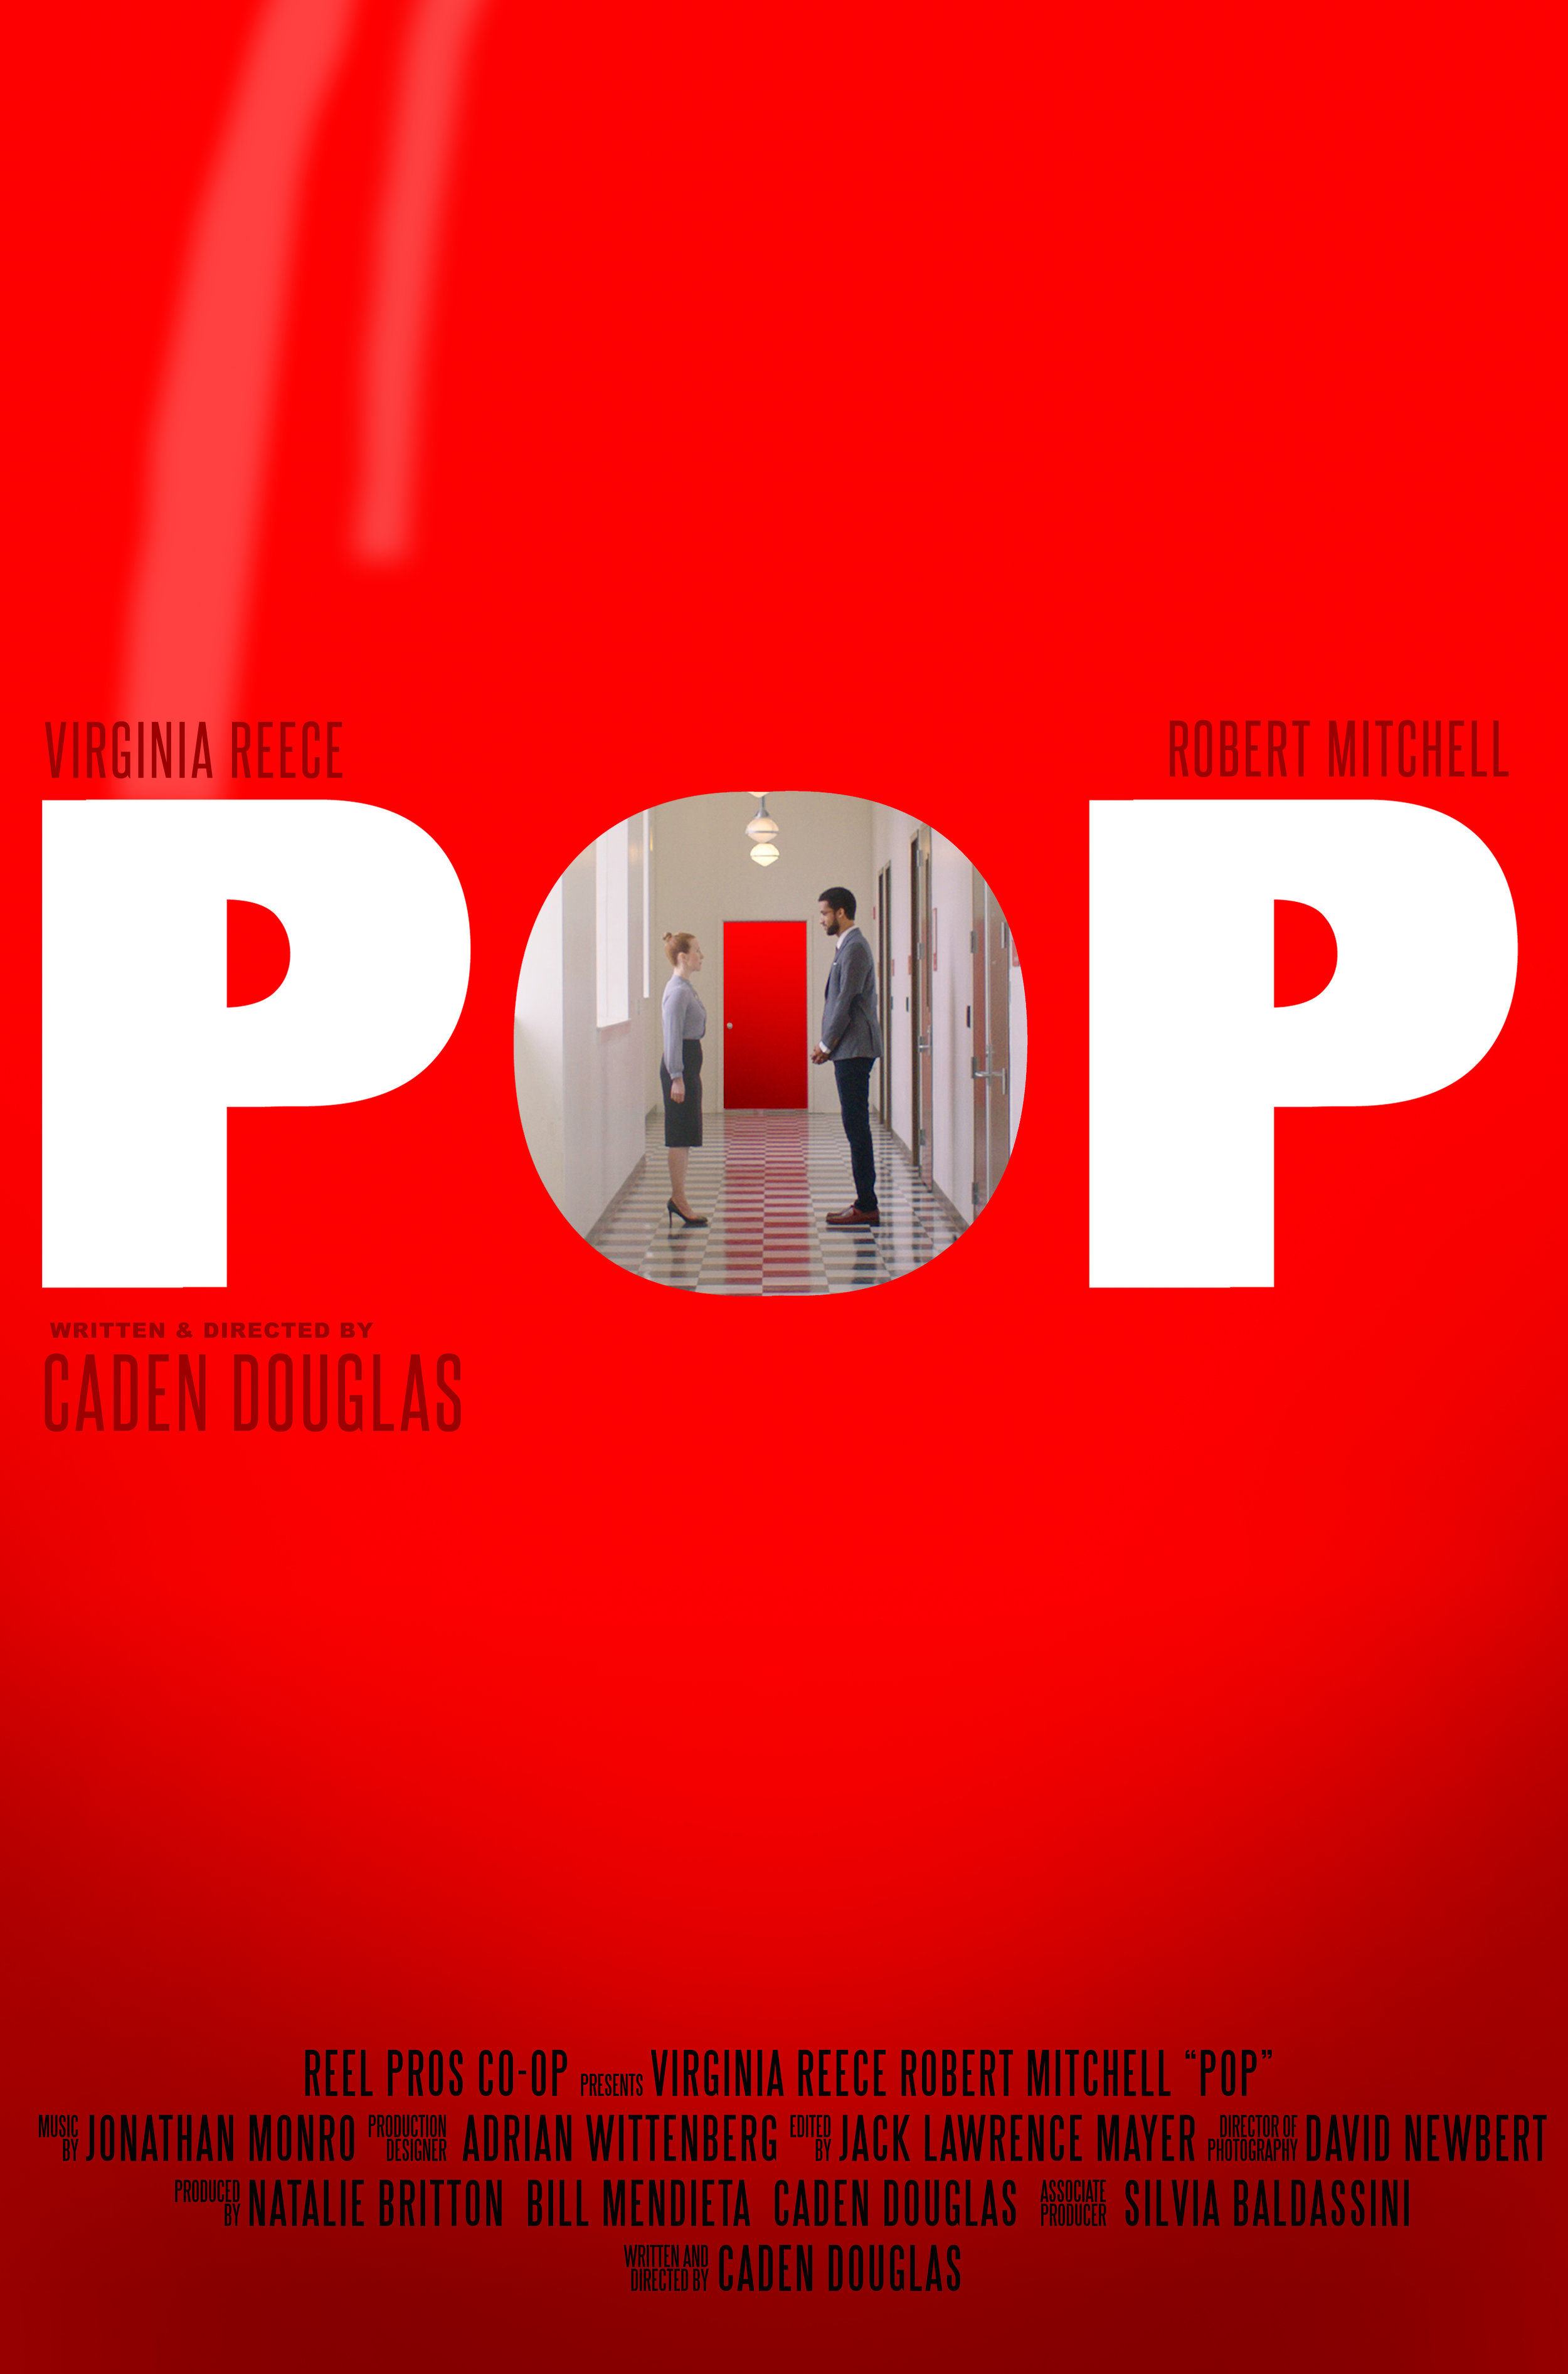 POP - Fear. Put a pin in it. - In this off-beat comedy, Carol has to face the thing she fears the most. It waits for her behind a mysterious door at the end of the hall. With the help of her doctor, can carol face her fear, go through the door, and burst through her crippling phobia?Written and directed by Caden Douglas, starring Virginia Reece and Robert Mitchell. Produced by Natalie Britton, Bill Mendieta, and Caden Douglas in association with The Collaborative.TRAILERIMDB